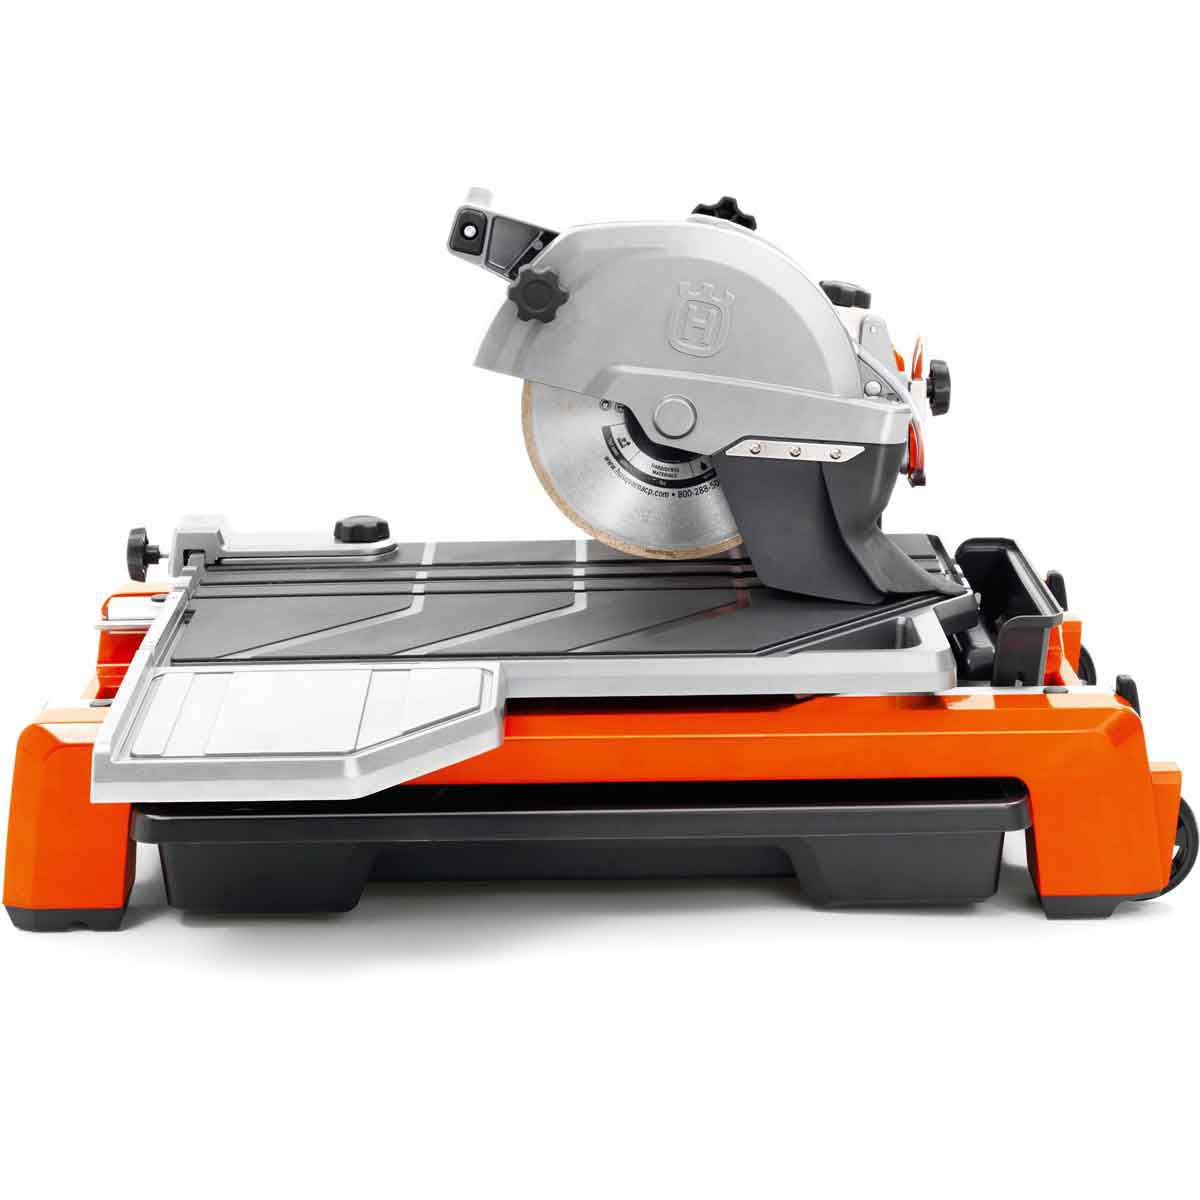 Husqvarna TS60 saw with extension table for large tile